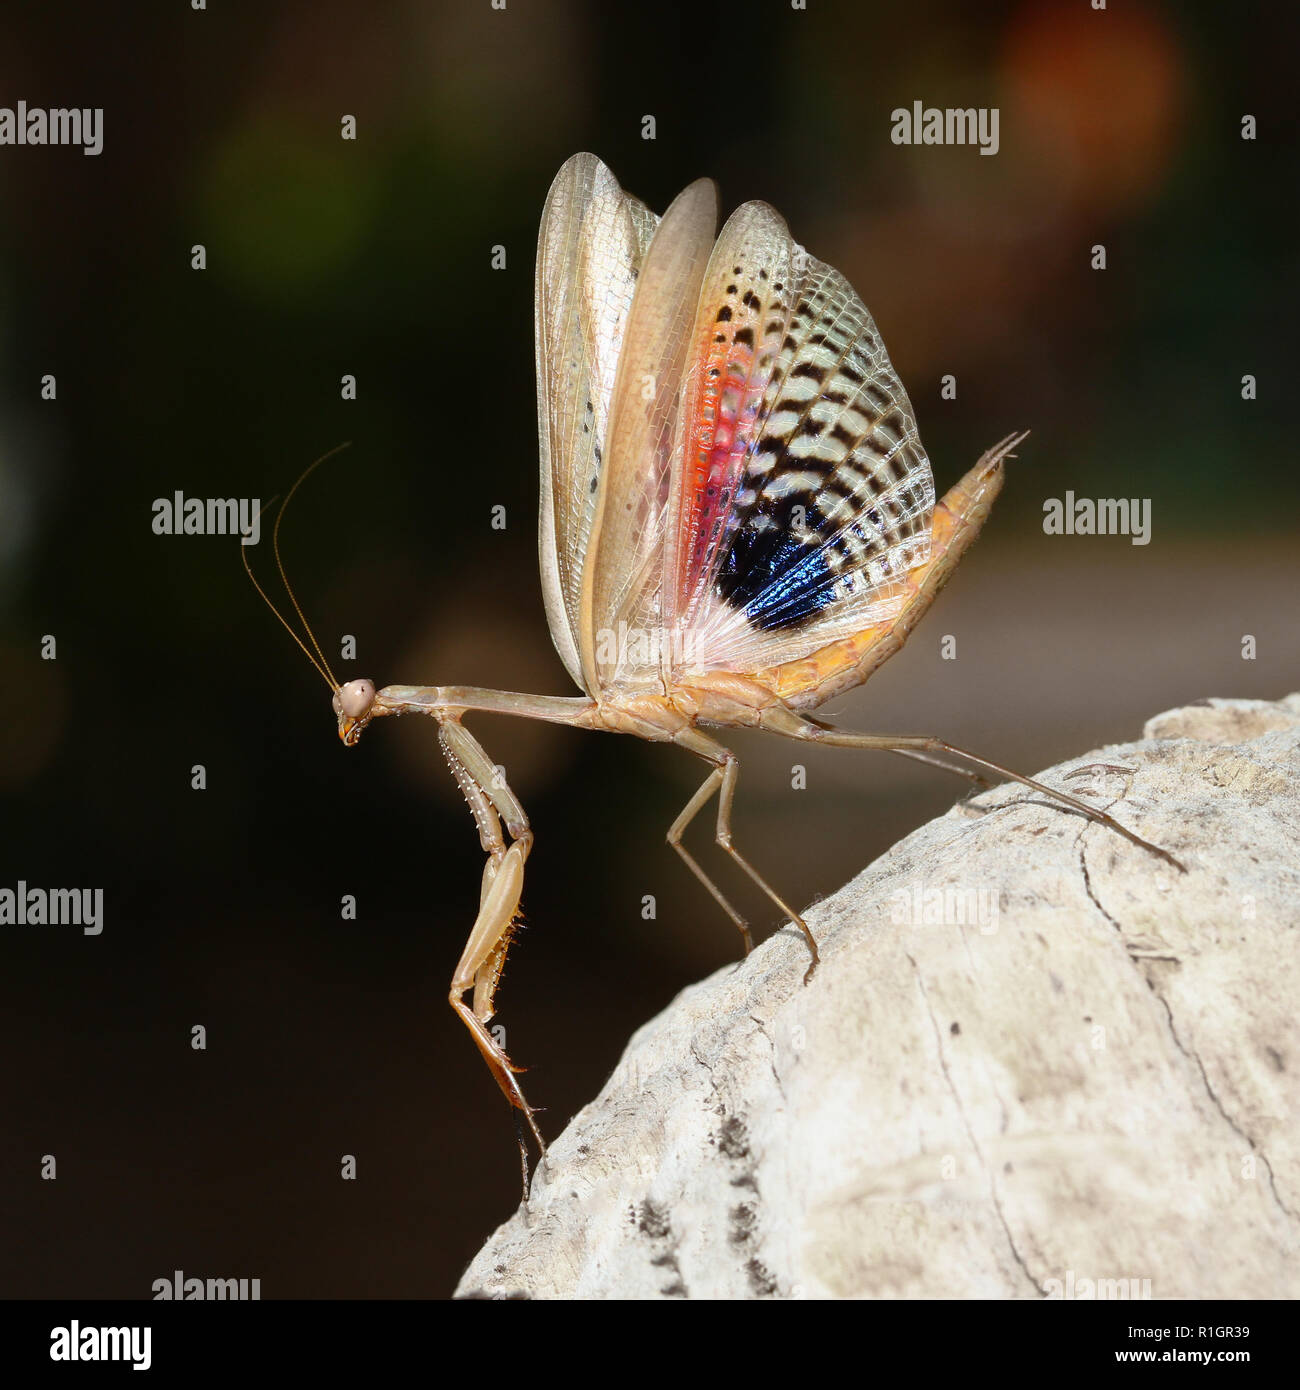 Frightened brown praying mantis show her wings Stock Photo